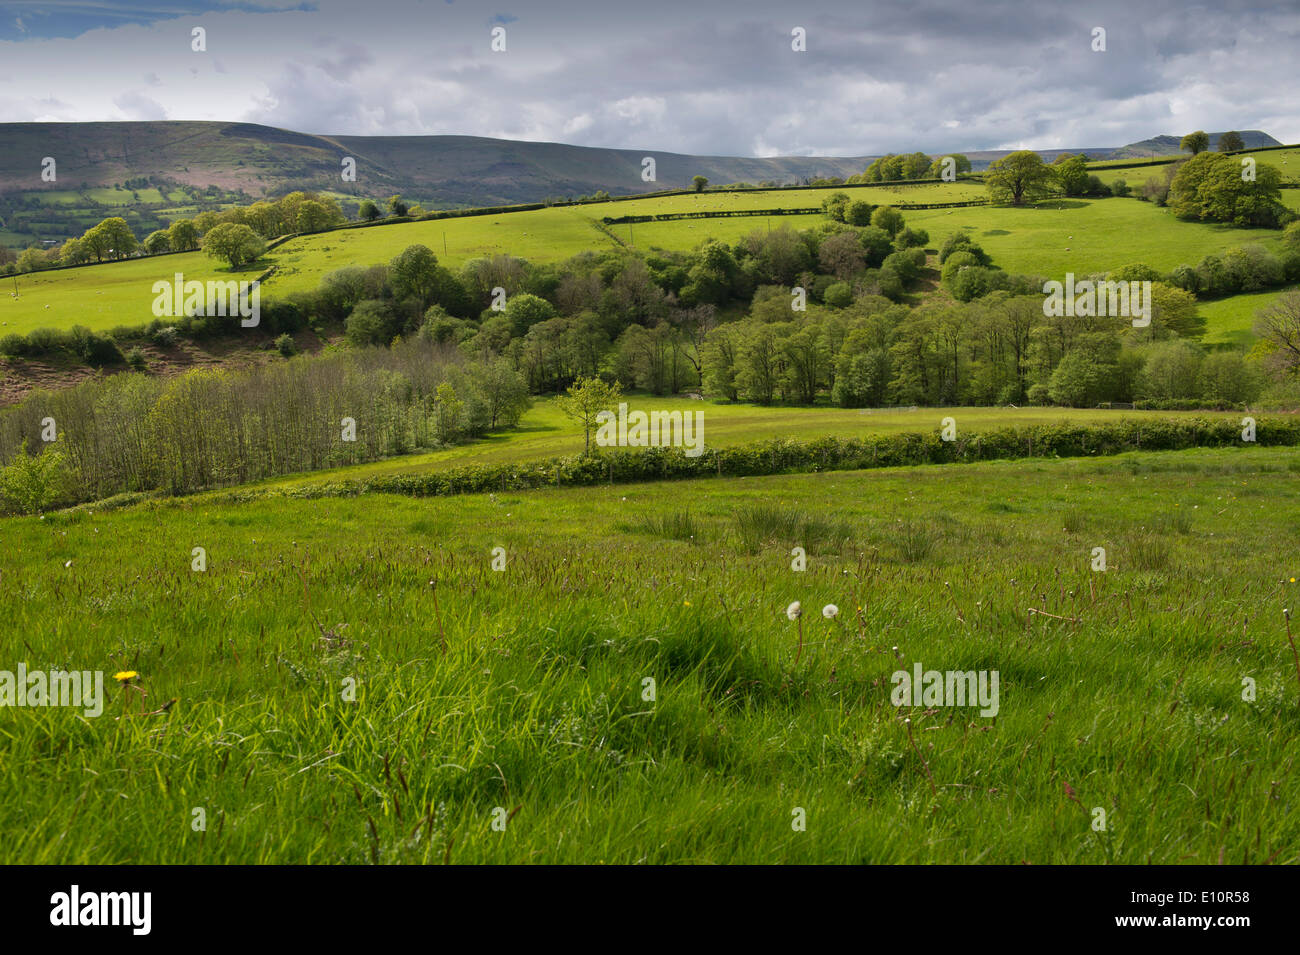 Farmer John Lewis-Stempel has written a book about meadows and is seen in a Herefordshire field surrounded by buttercups.a Stock Photo